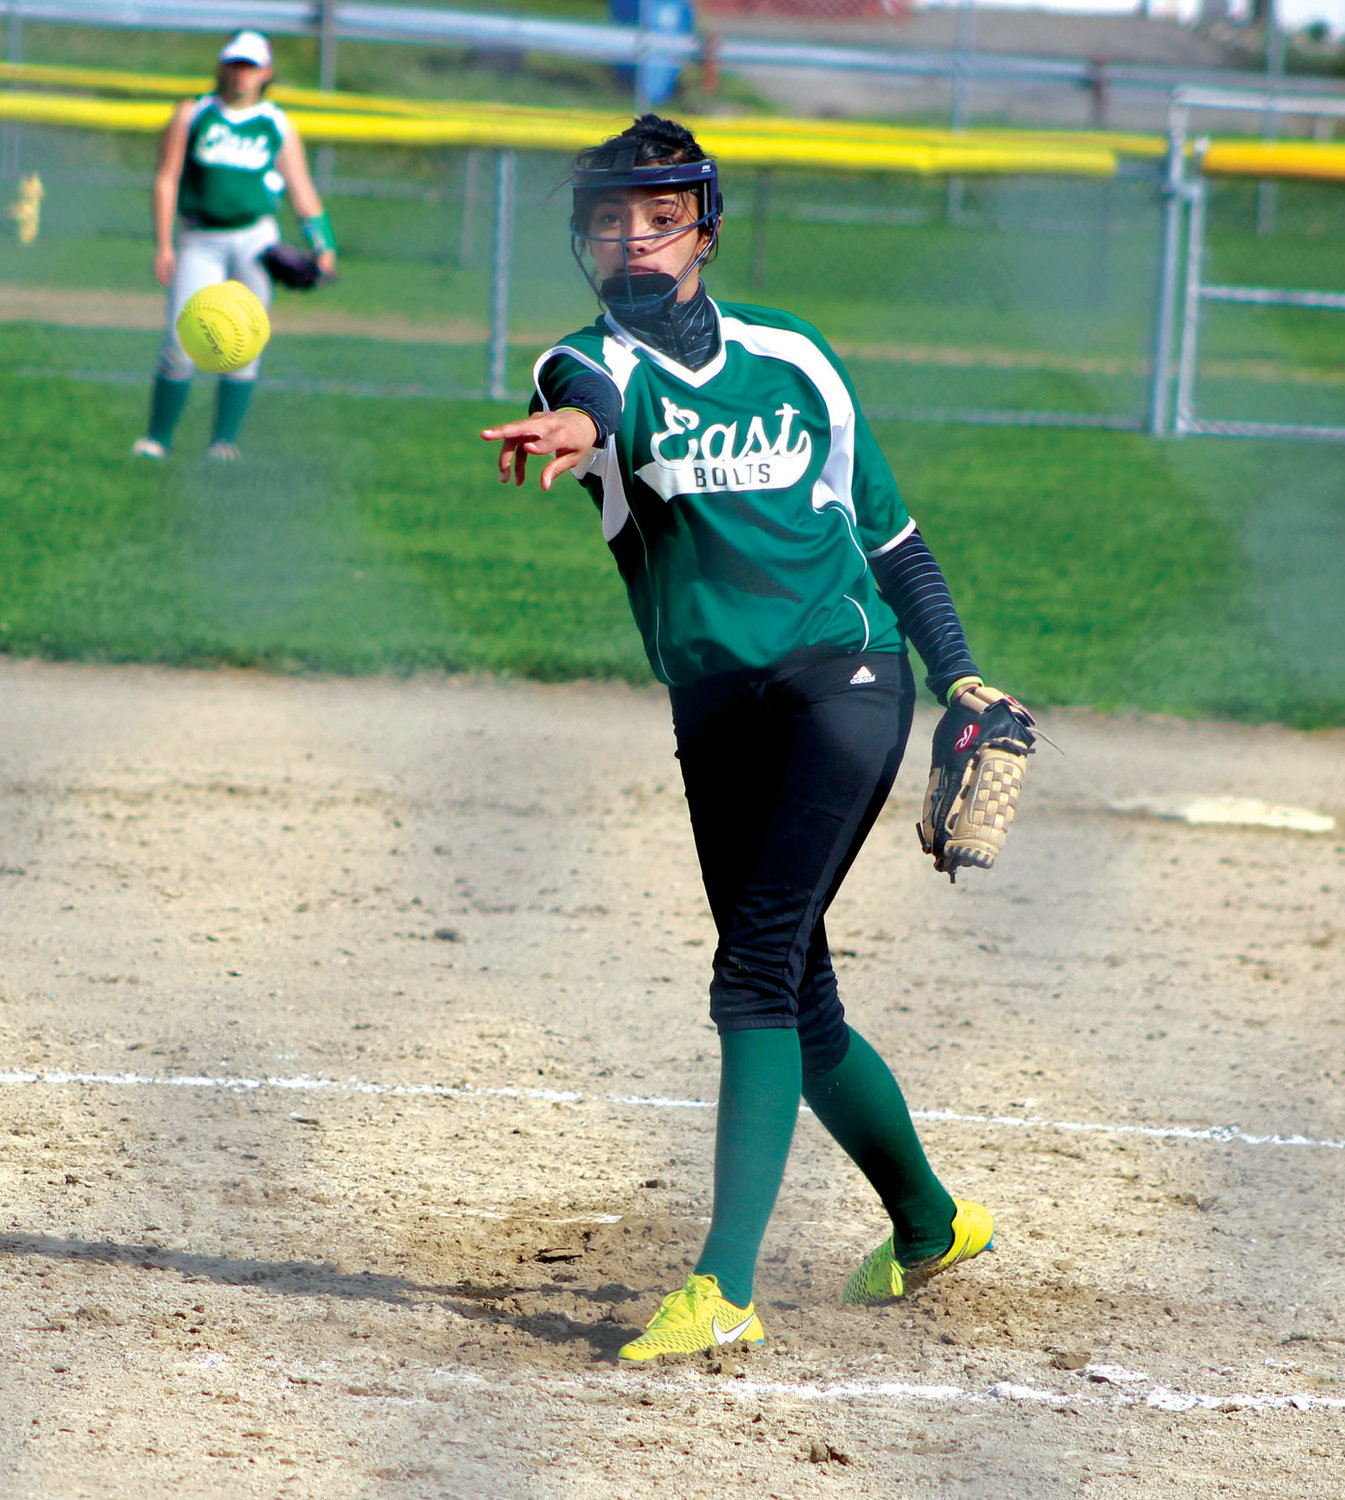 IN THE CIRCLE: East's Arianna Miech delivers a pitch against Toll Gate.